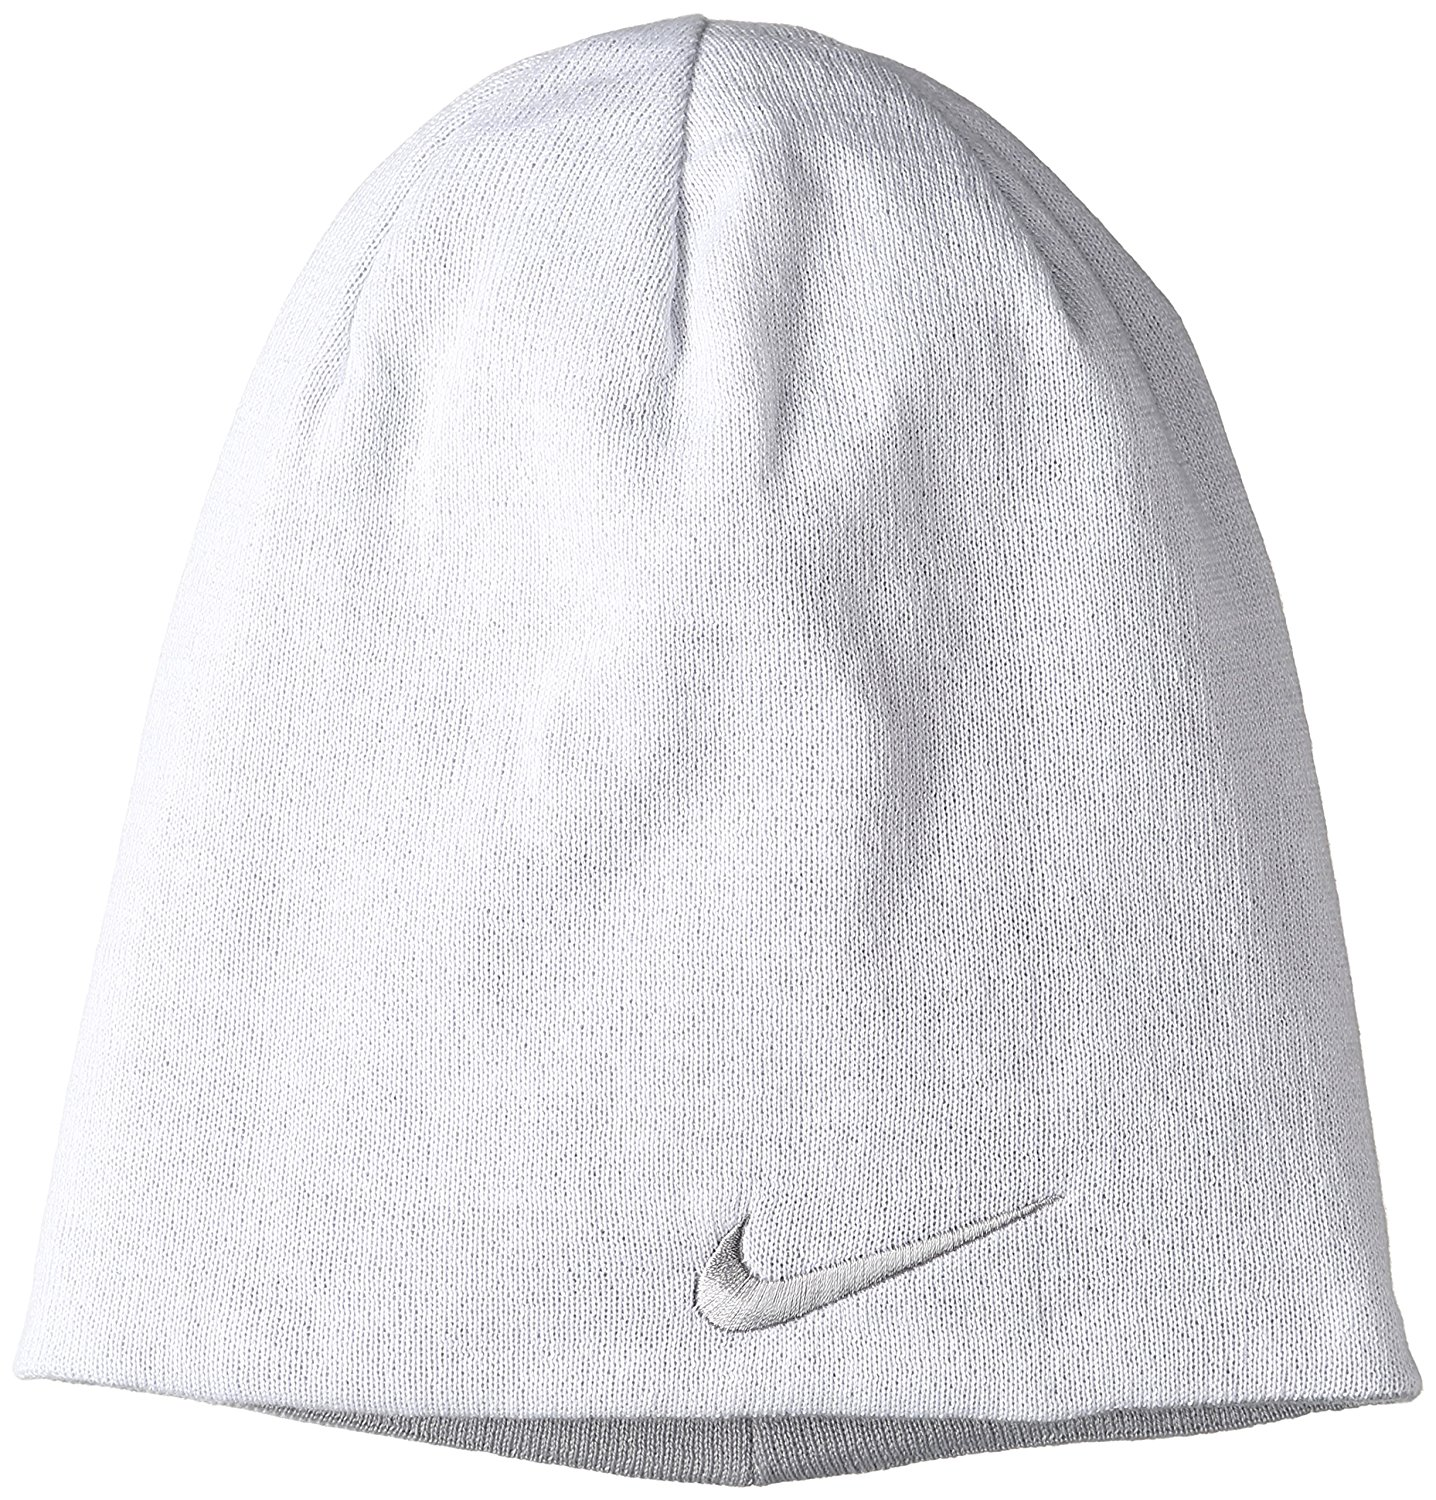 8f92d1bc95e Nike Mens Reversible Knit Golf Winter Beanie Caps